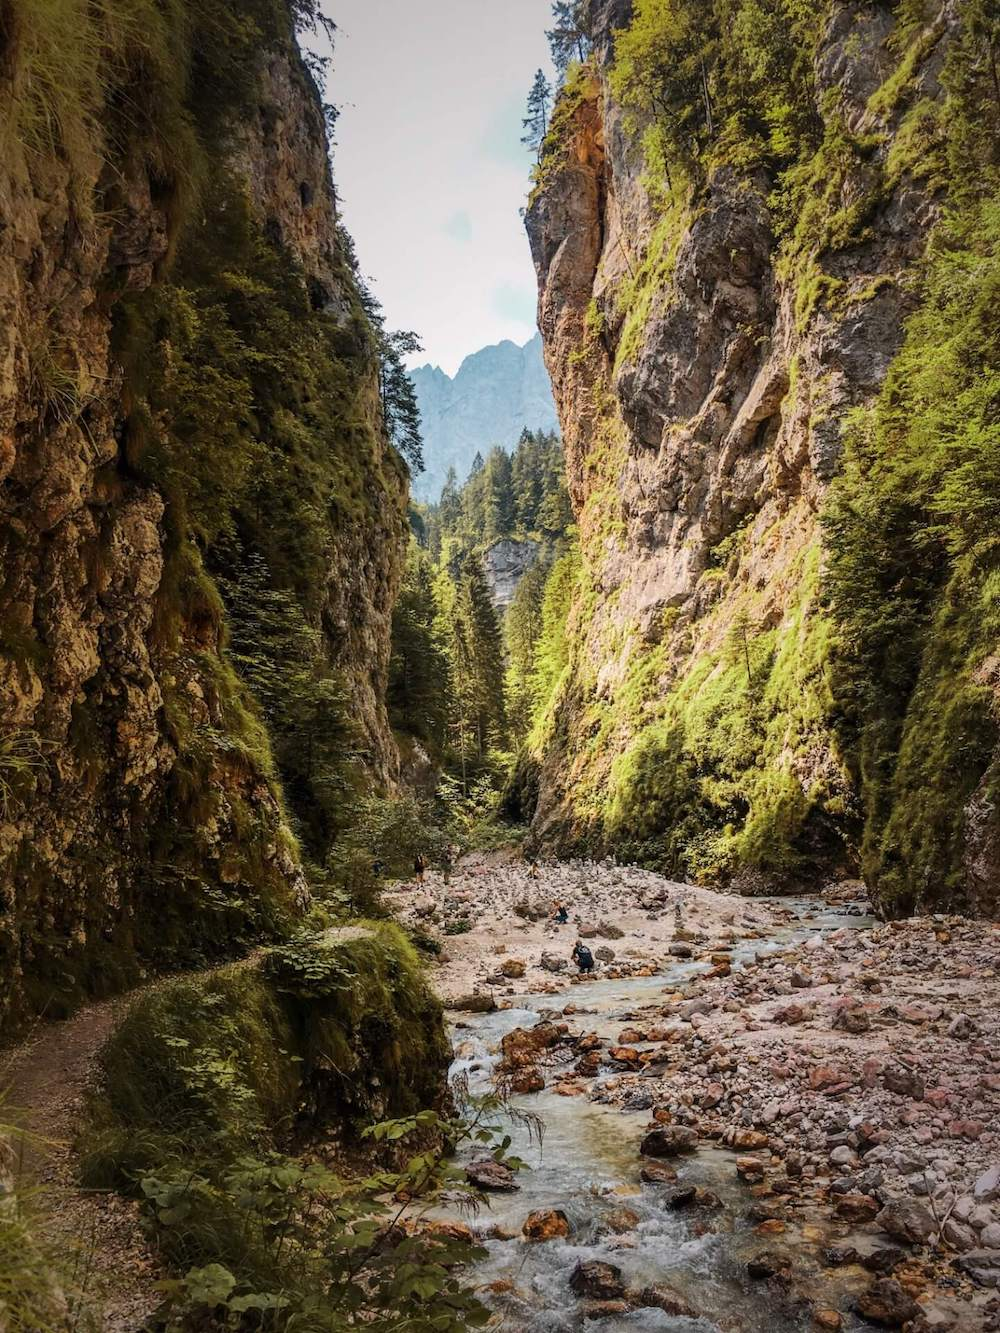 Martuljek gorge, Kranjska Gora, Slovenia, 7 hikes in Slovenia you've never heard of | Moon & Honey Travel